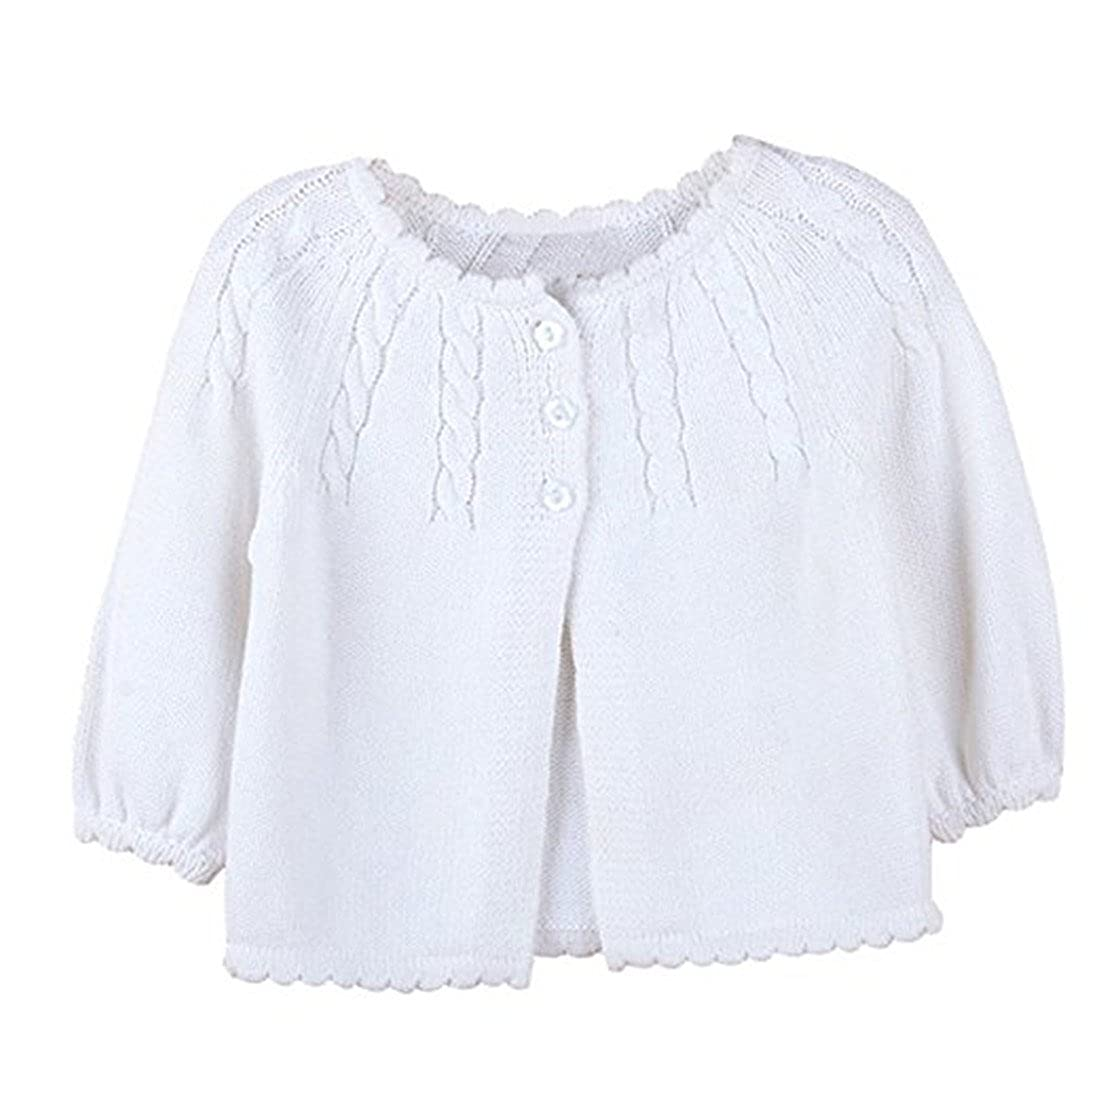 Toddler Kid Little Infant Girls Twist Ruffle Fine Knit Button-Down Cardigan Sweater Rca31